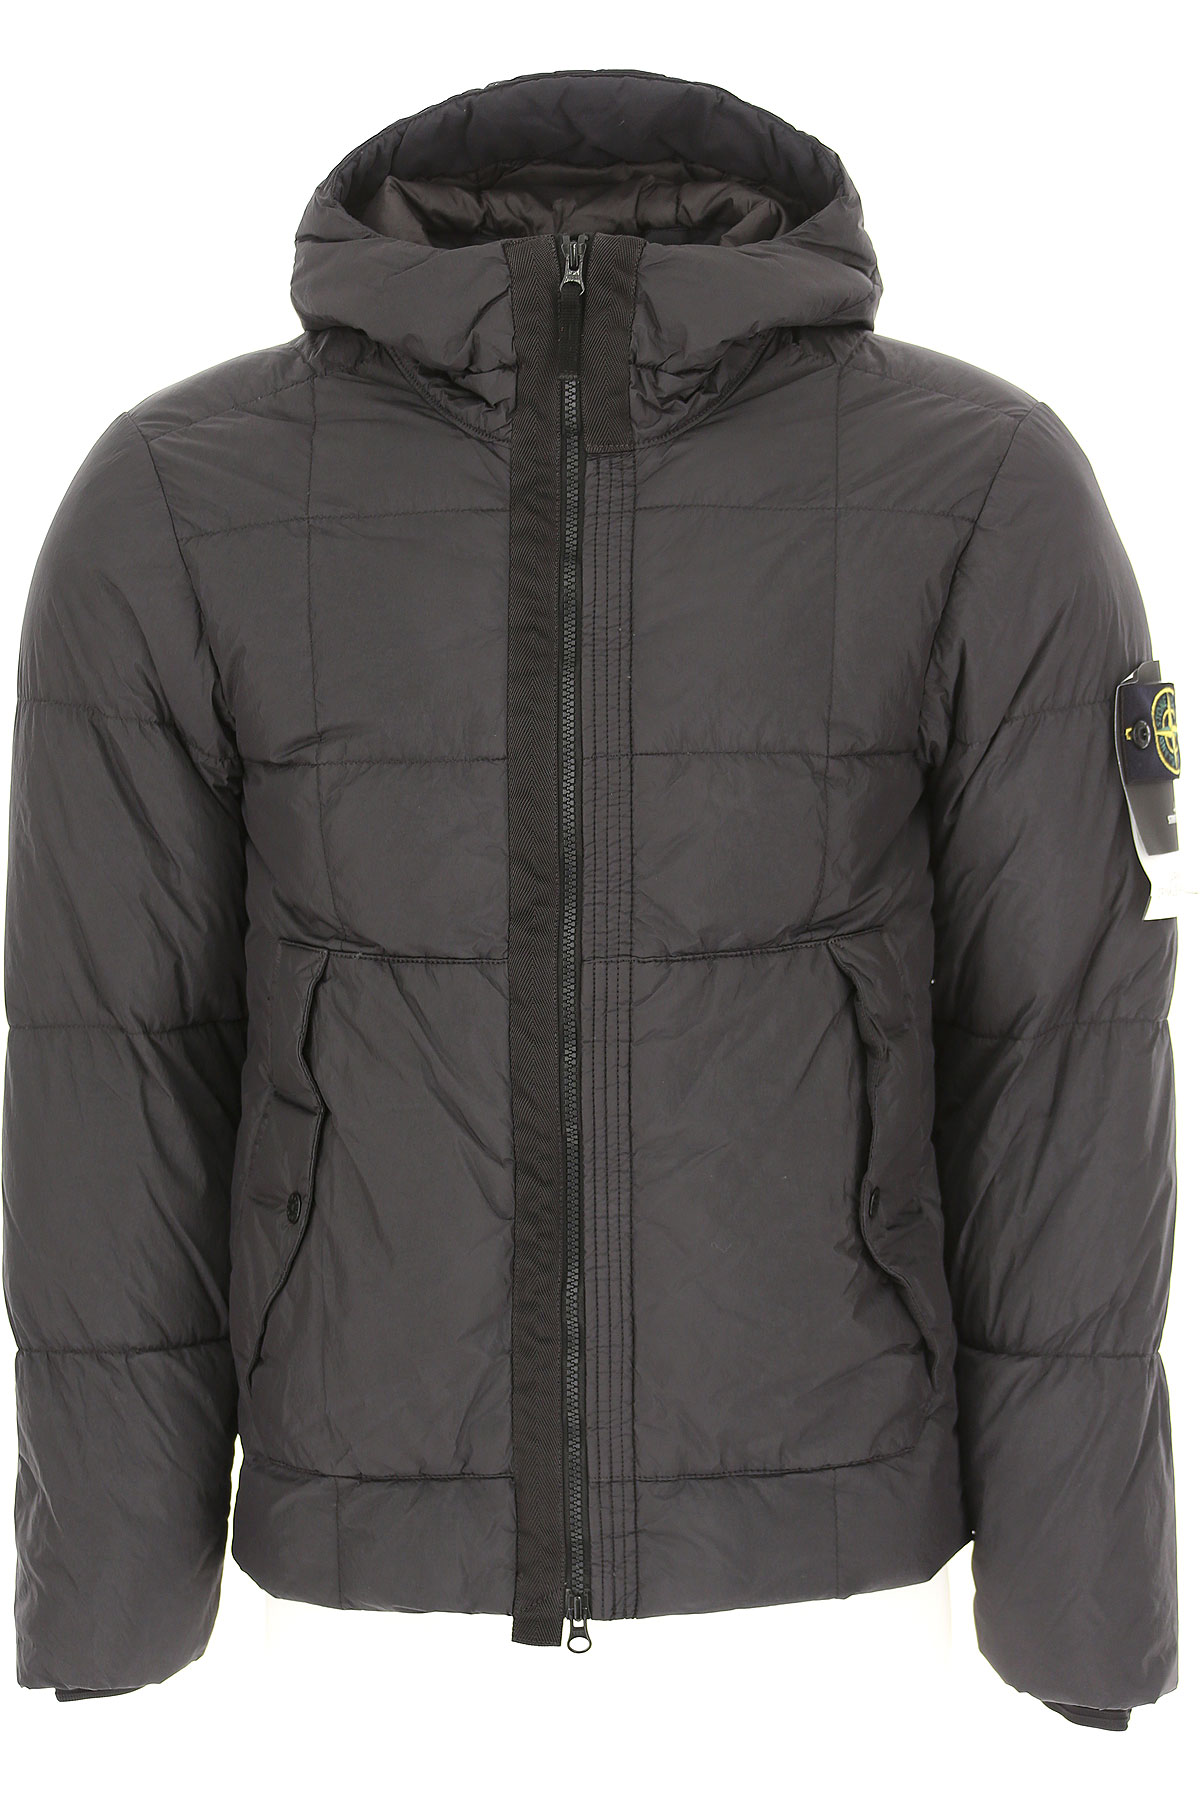 Image of Stone Island Down Jacket for Men, Puffer Ski Jacket, Anthracite Grey, Down, 2017, L M S XL